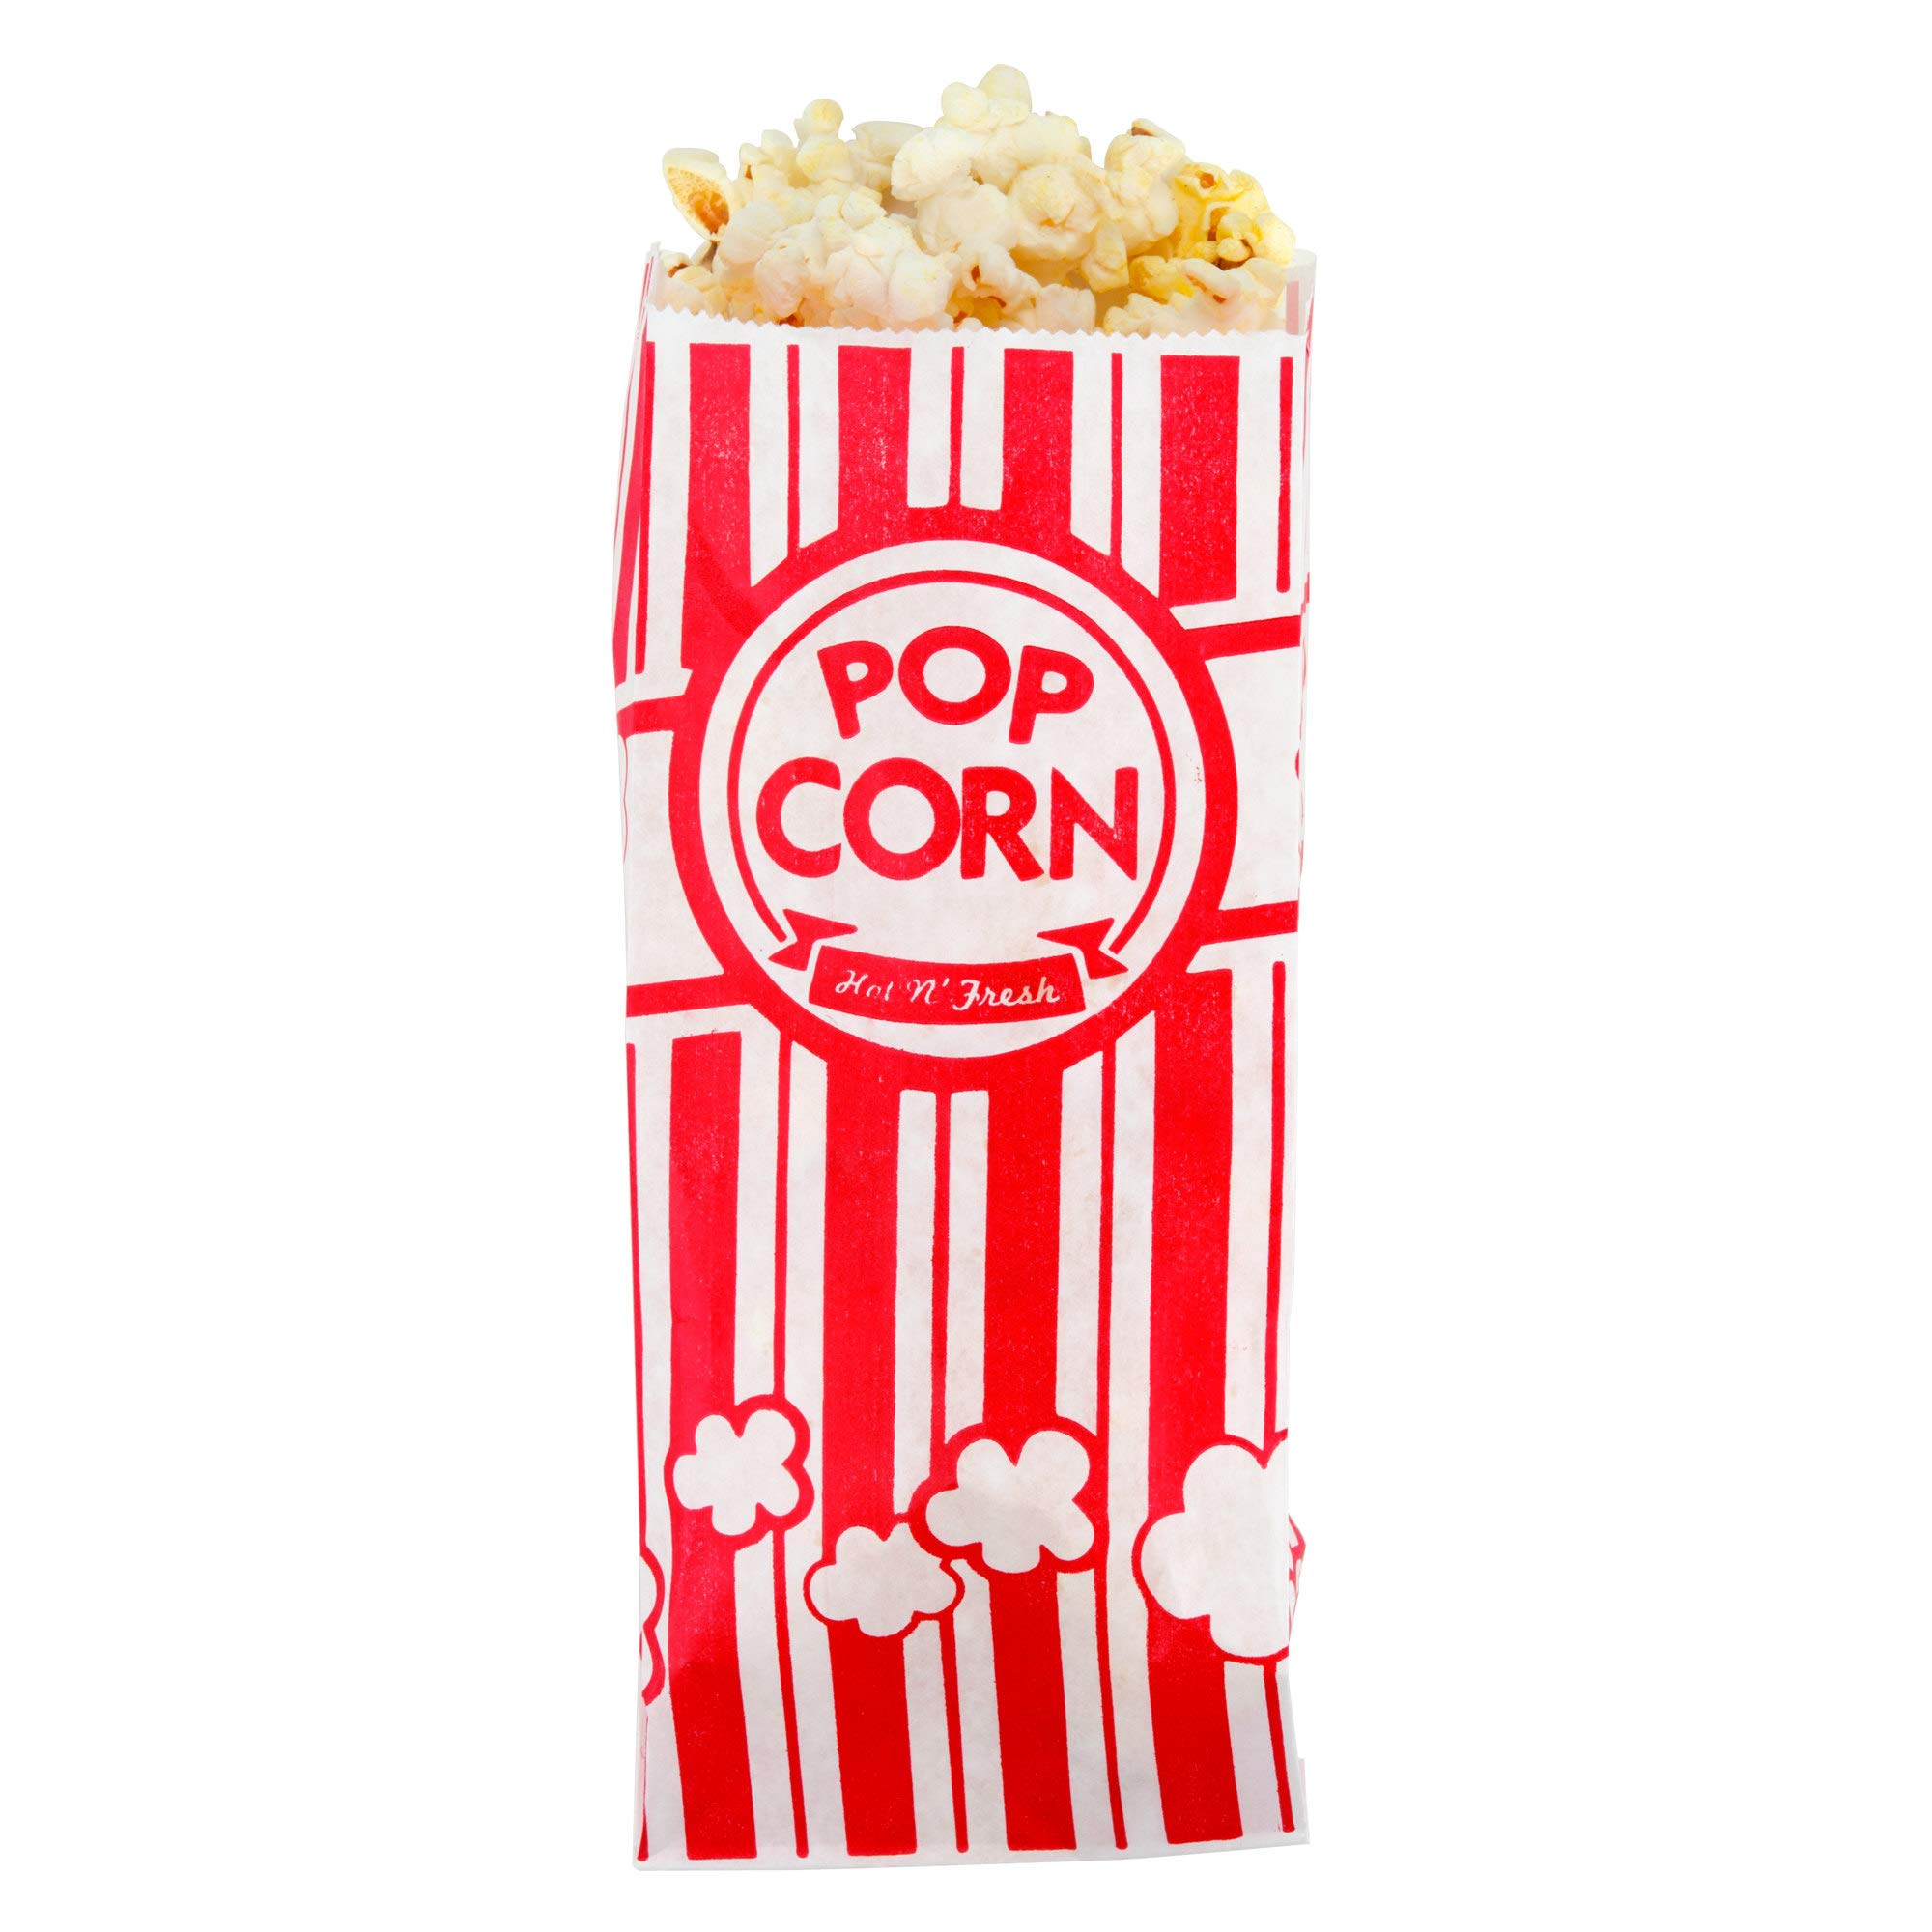 Professional Quality 3 1/2'' x 2 1/4'' x 8'' 1 oz. Popcorn Bags, Commercial Grade, Movie Theater - Set of 5000